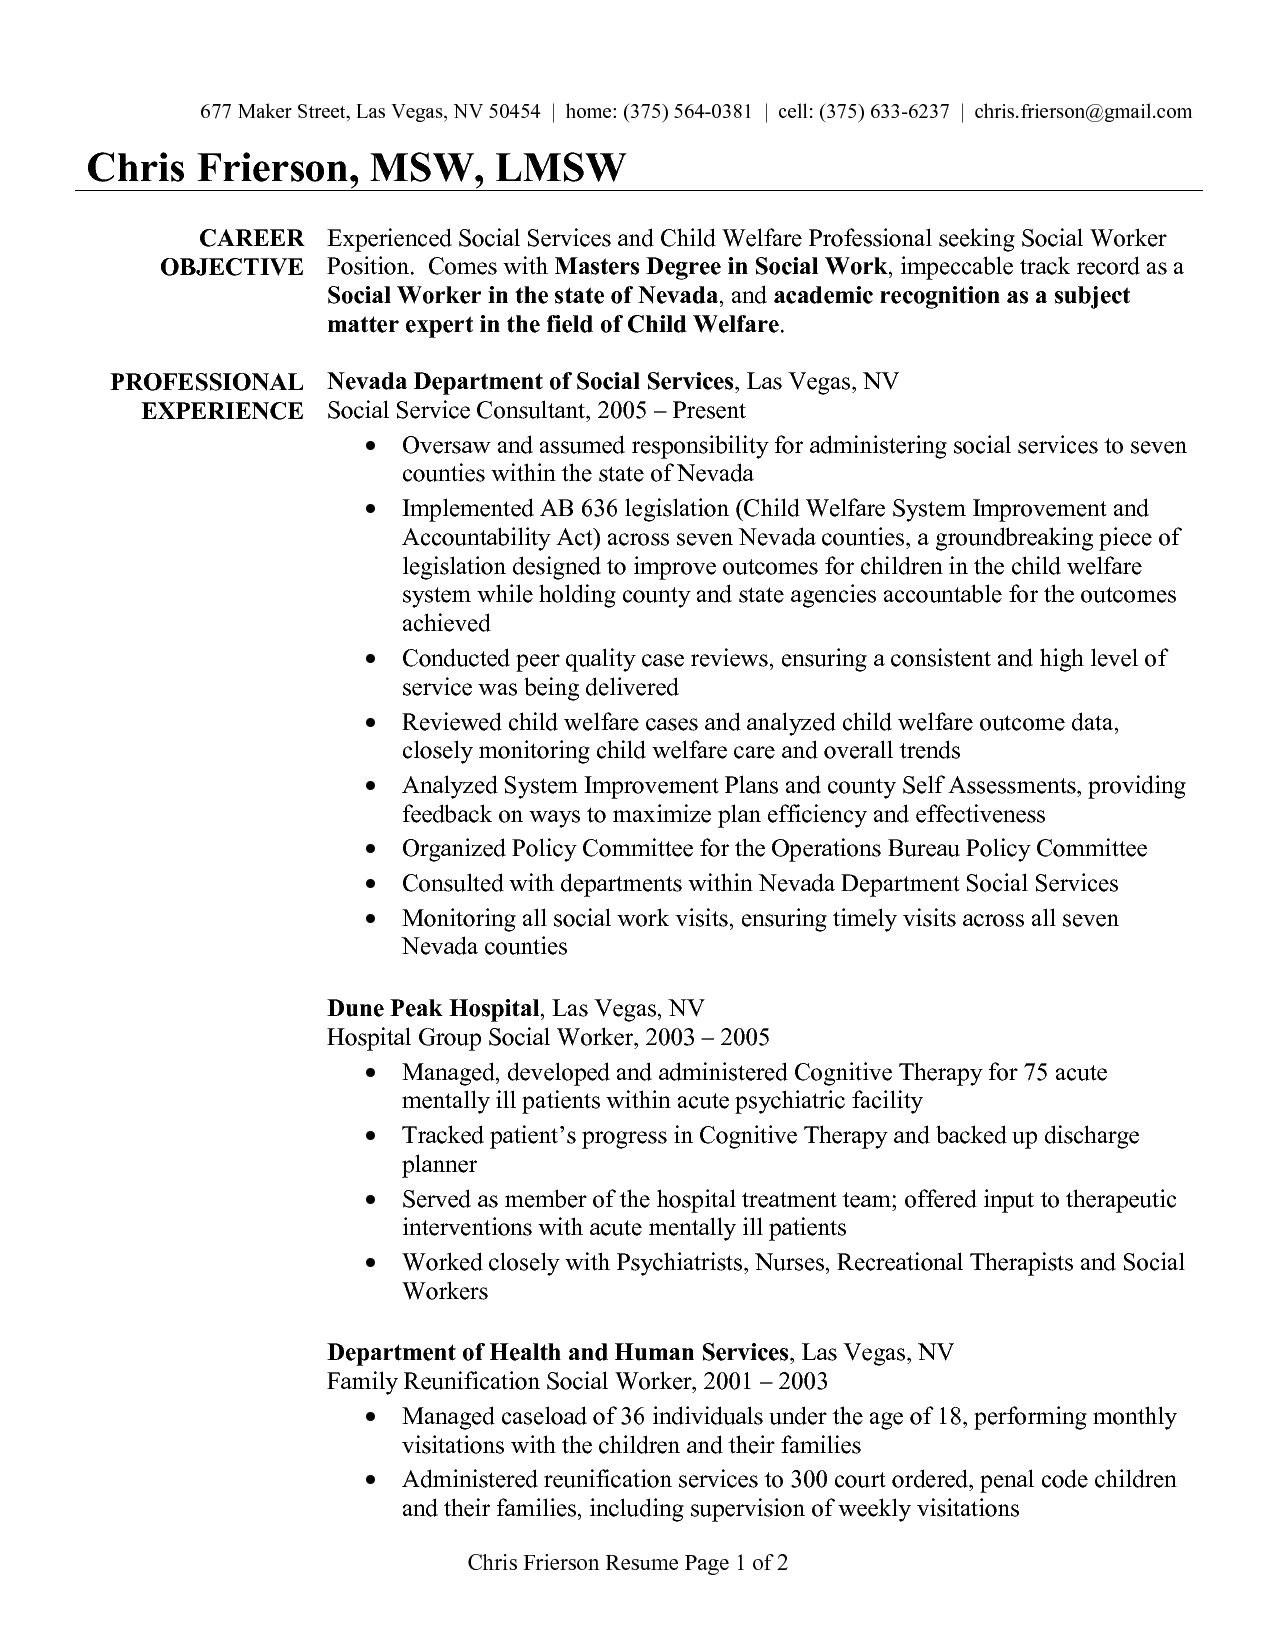 social worker sample resume